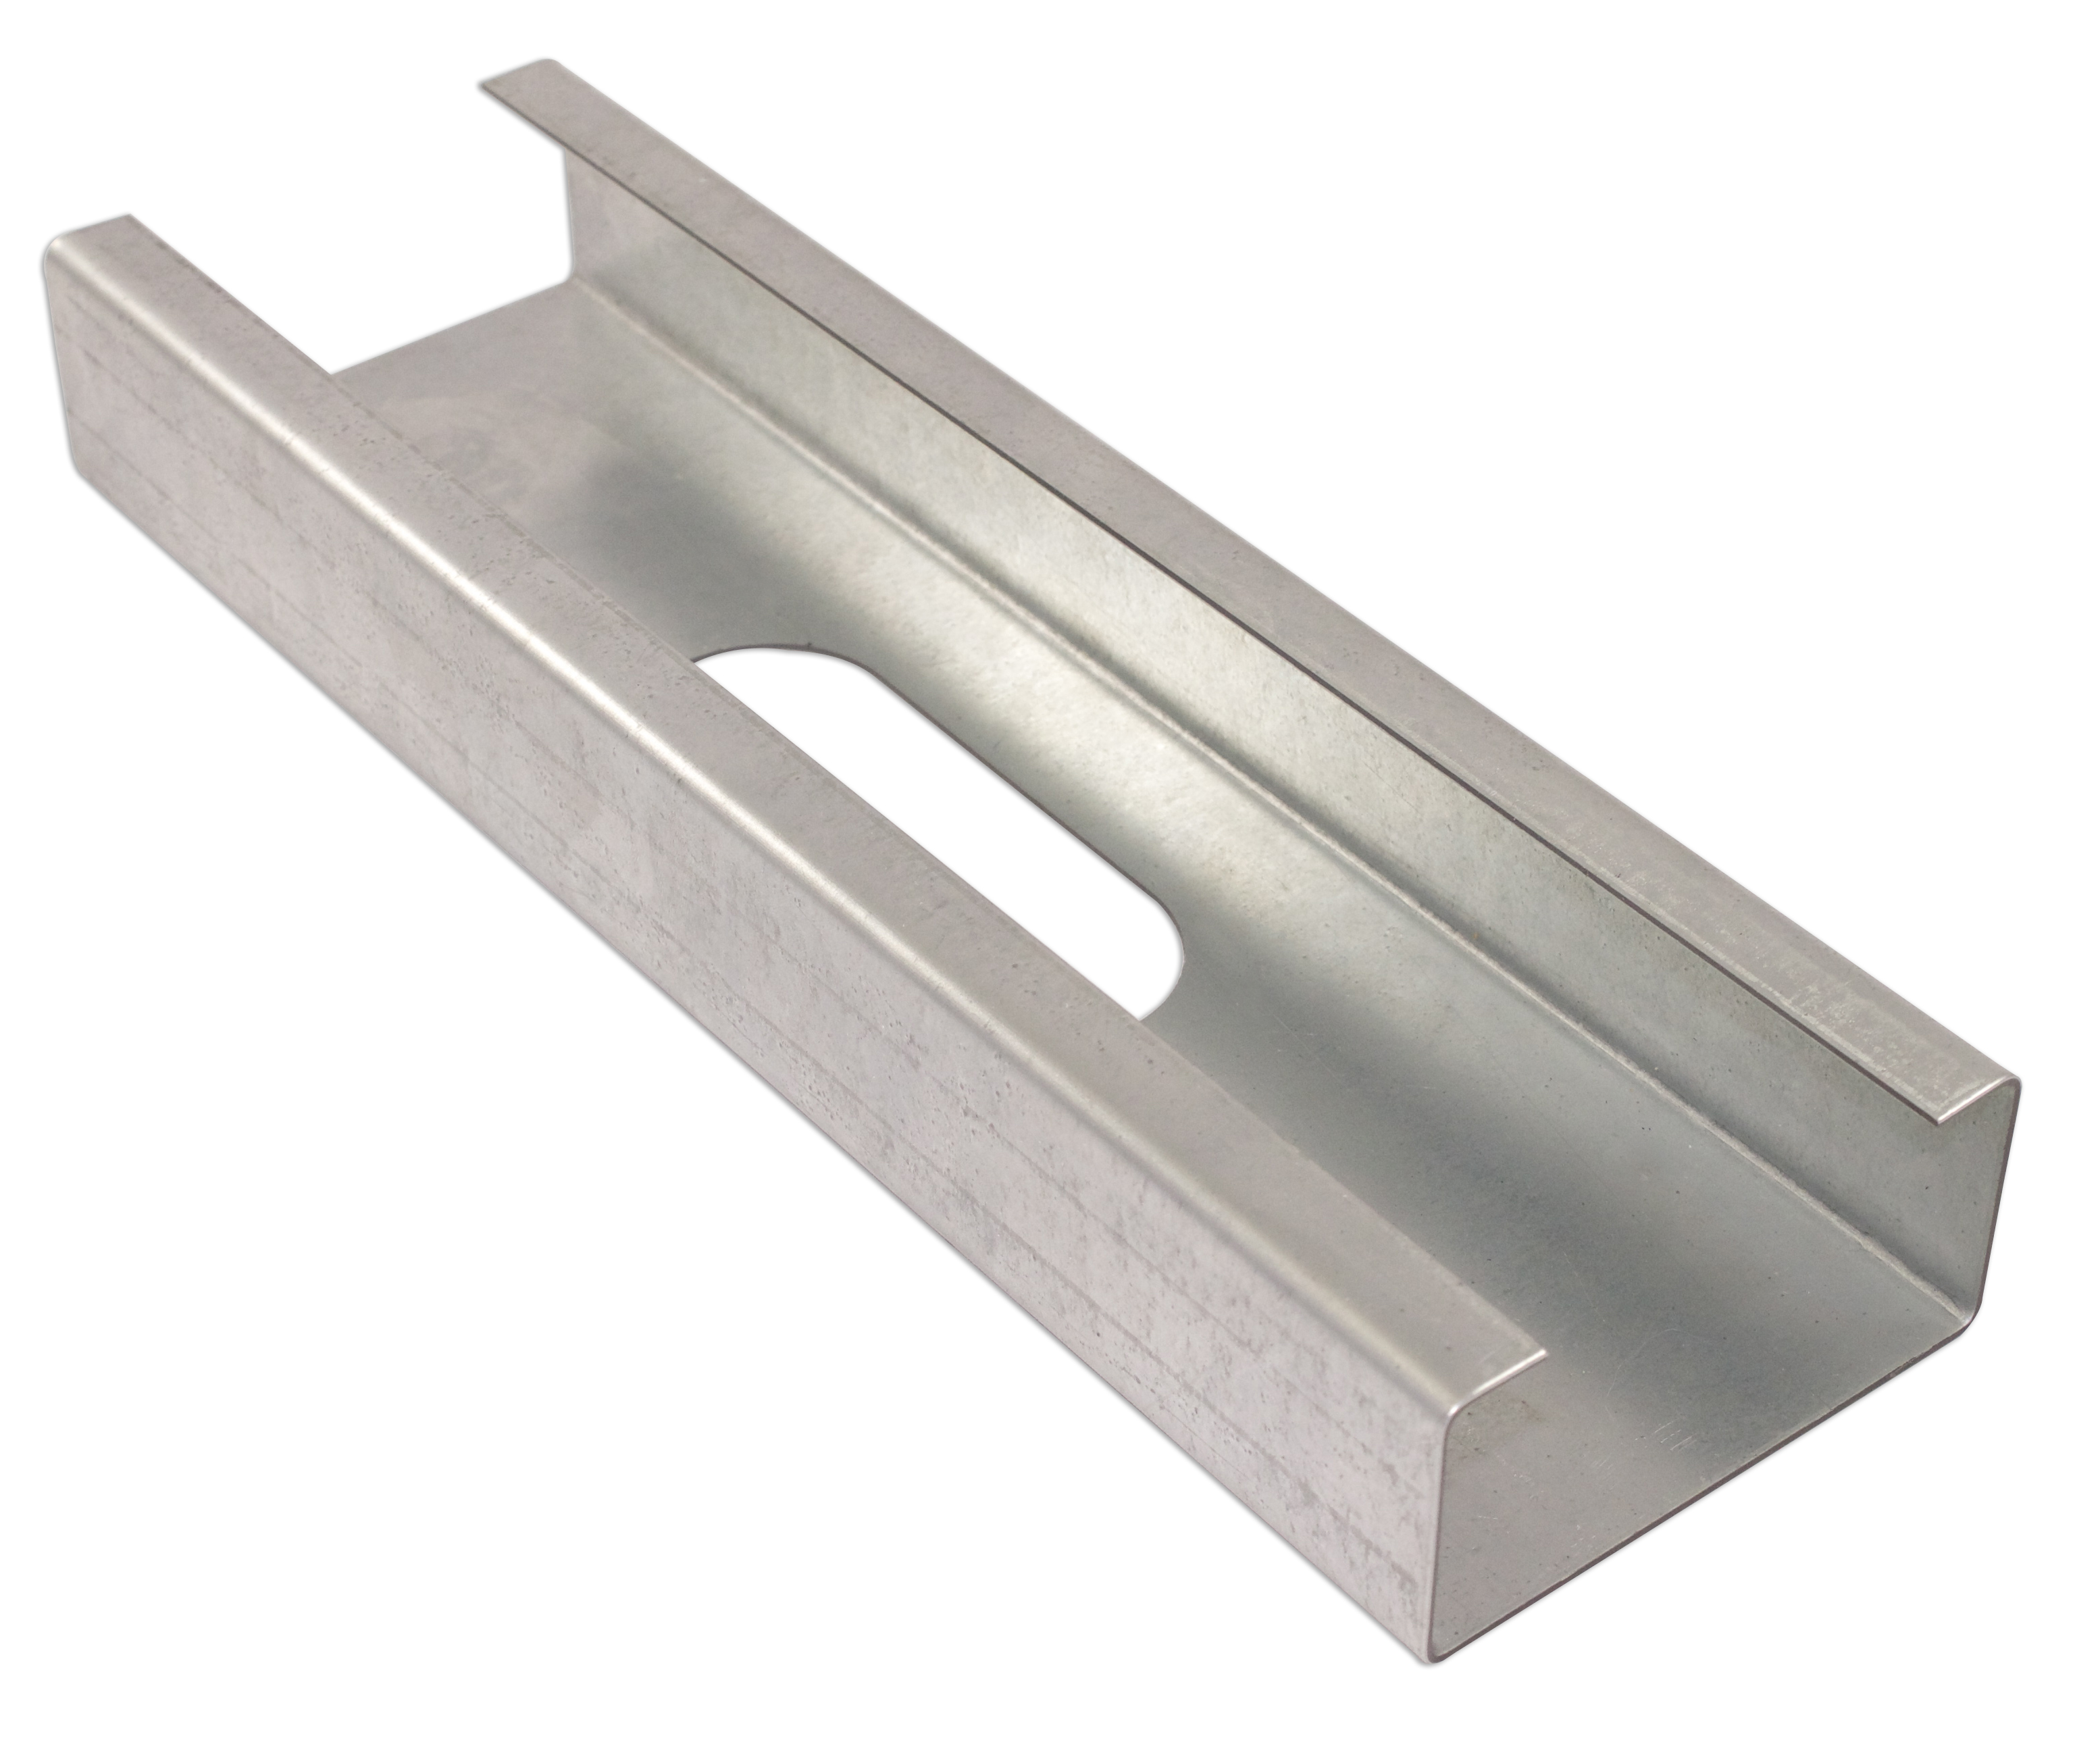 Intriguing Which Have All Studs Have Returns Or Typical Return Sizes Are Studs Include Wall How To Order Steel Framing How Far Apart Are Wall Studs Uk How Far Apart Are Wall Studs Spaced All houzz-03 How Far Apart Are Wall Studs